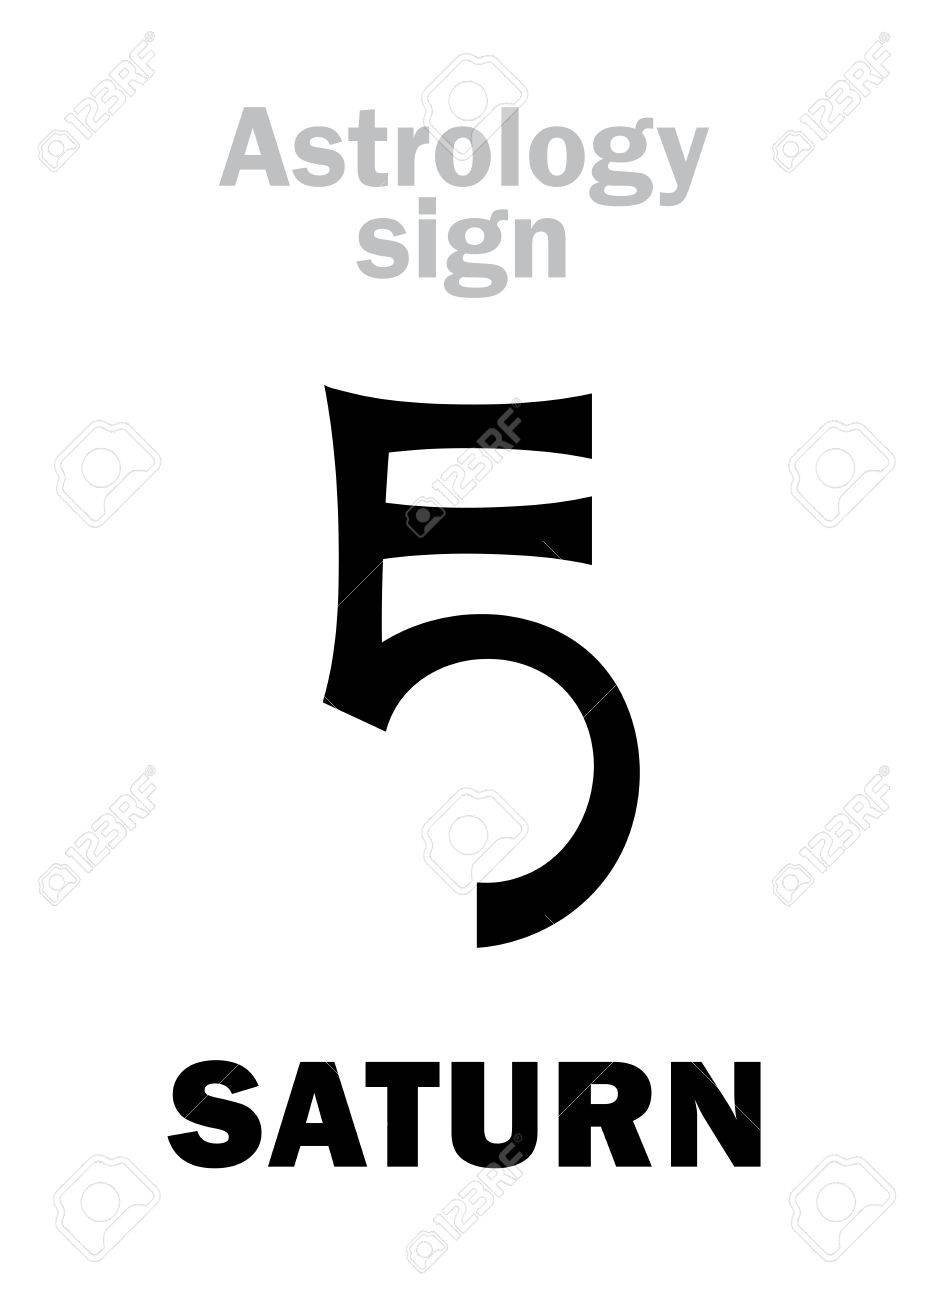 Astrology alphabet saturn classic major planet hieroglyphics astrology alphabet saturn classic major planet hieroglyphics character sign single symbol buycottarizona Image collections